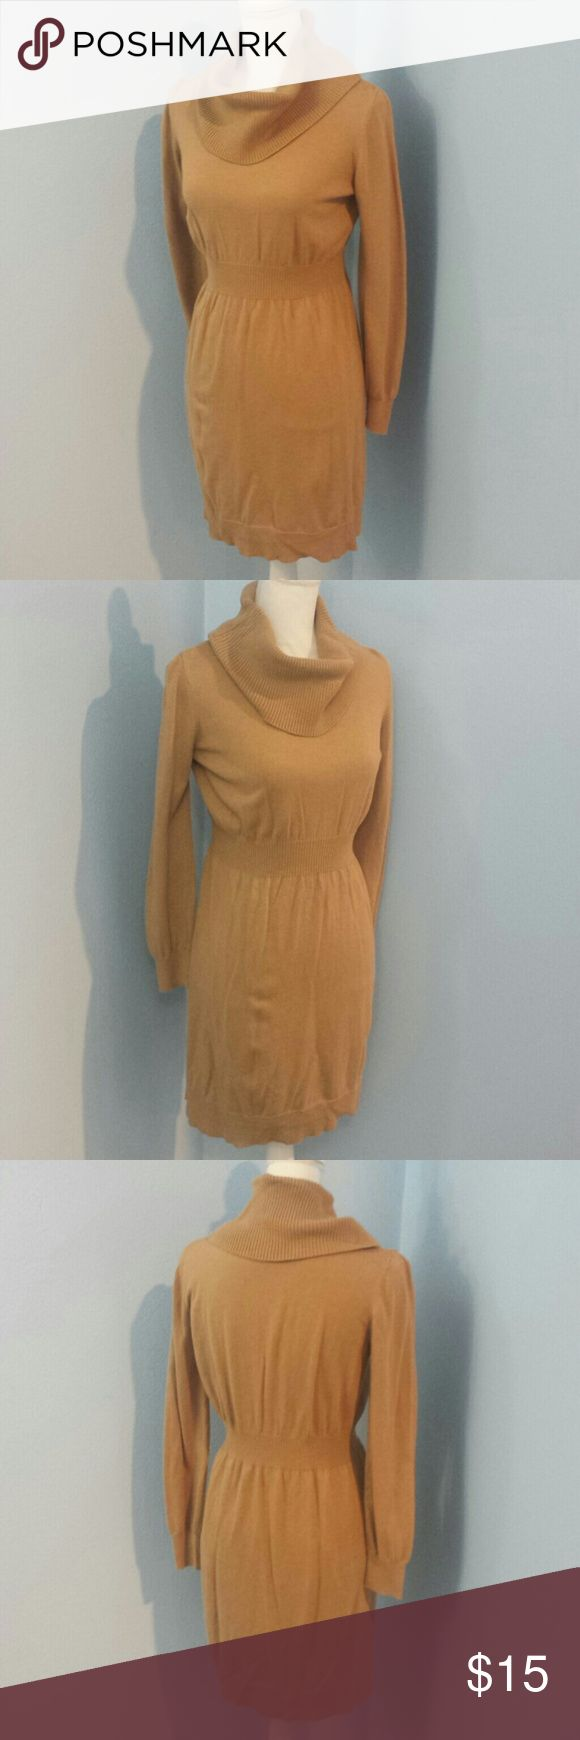 """Old Navy Long Sleeve Dress This fits above the knee for someone 5'6"""".  53% Cotton, 40% Nylon, 7% Viscose Old Navy Dresses Long Sleeve"""